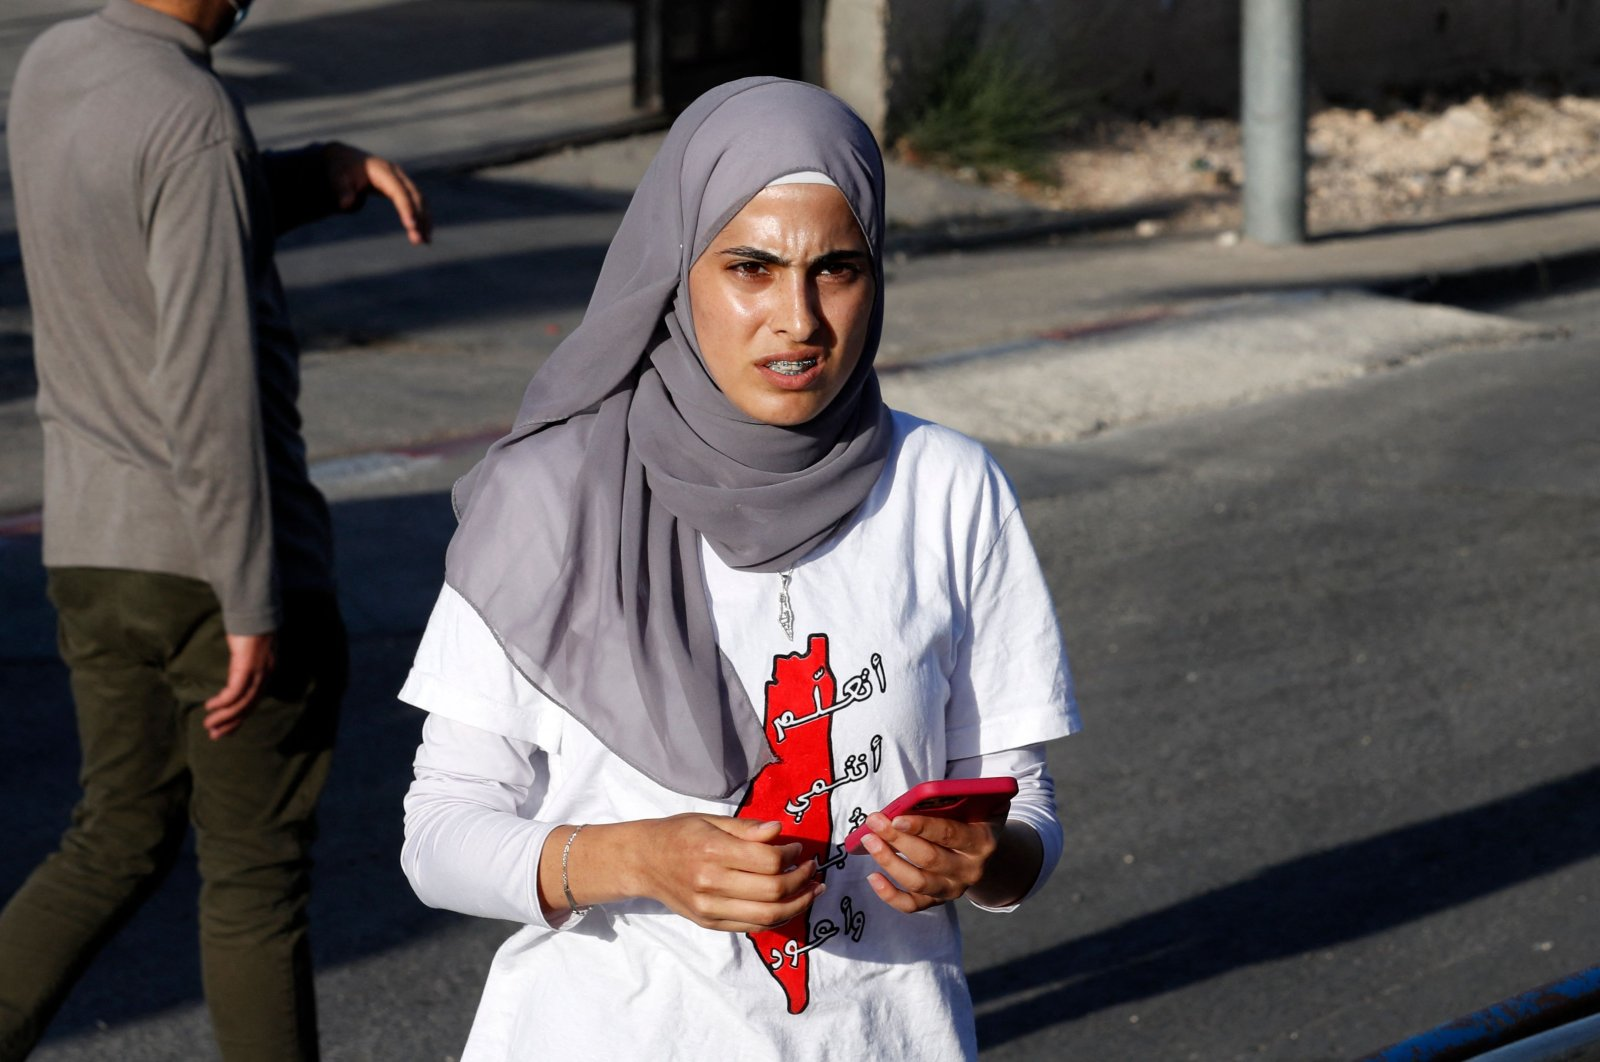 In this file photo taken on May 29, 2021, Palestinian activist Muna el-Kurd takes part in a rally to demand the reopening of the Israeli police checkpoint at the entrance of the Sheikh Jarrah neighborhood in occupied East Jerusalem, Palestine. (AFP Photo)